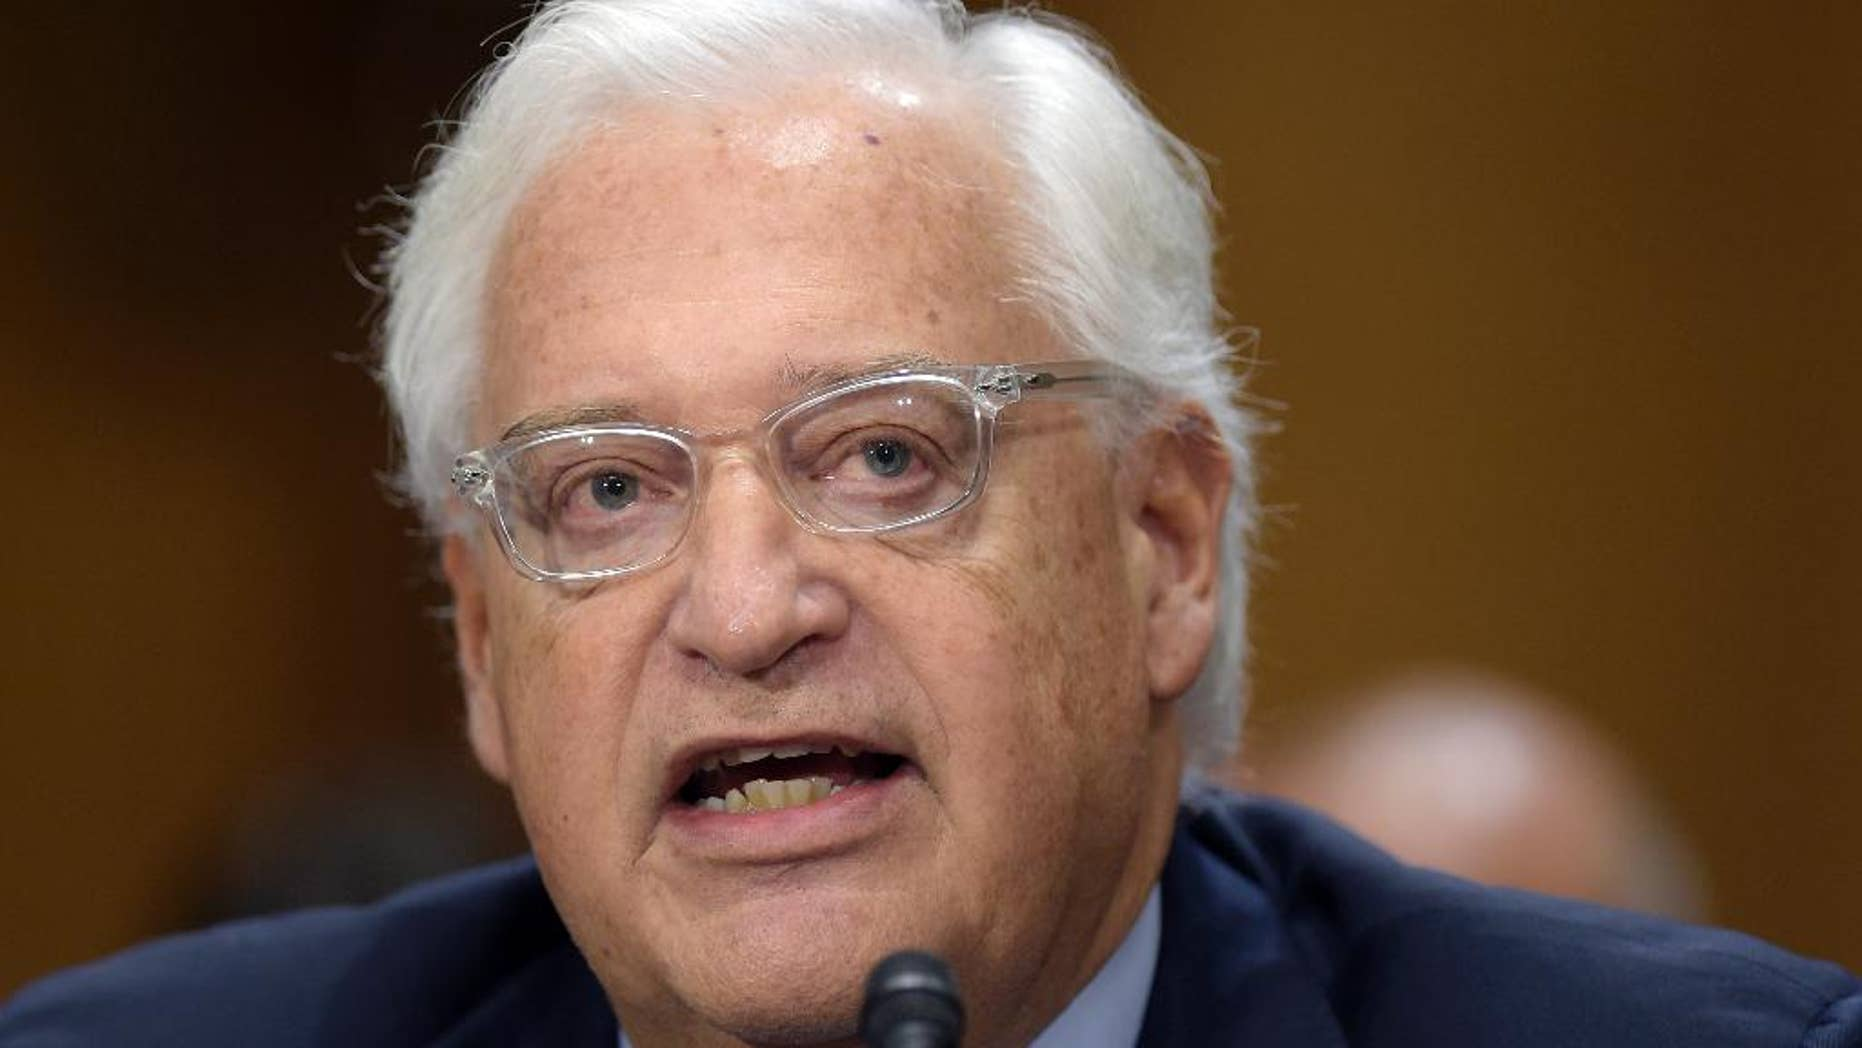 FILE - In this Feb. 16, 2017 file photo, U.S. Ambassador Israel-designate David Friedman testifies on Capitol Hill in Washington at his confirmation hearing before the Senate Foreign Relations Committee. The committee narrowly approved Friedman's nomination, Thursday, March 9, 2017.  (AP Photo/Susan Walsh, File)